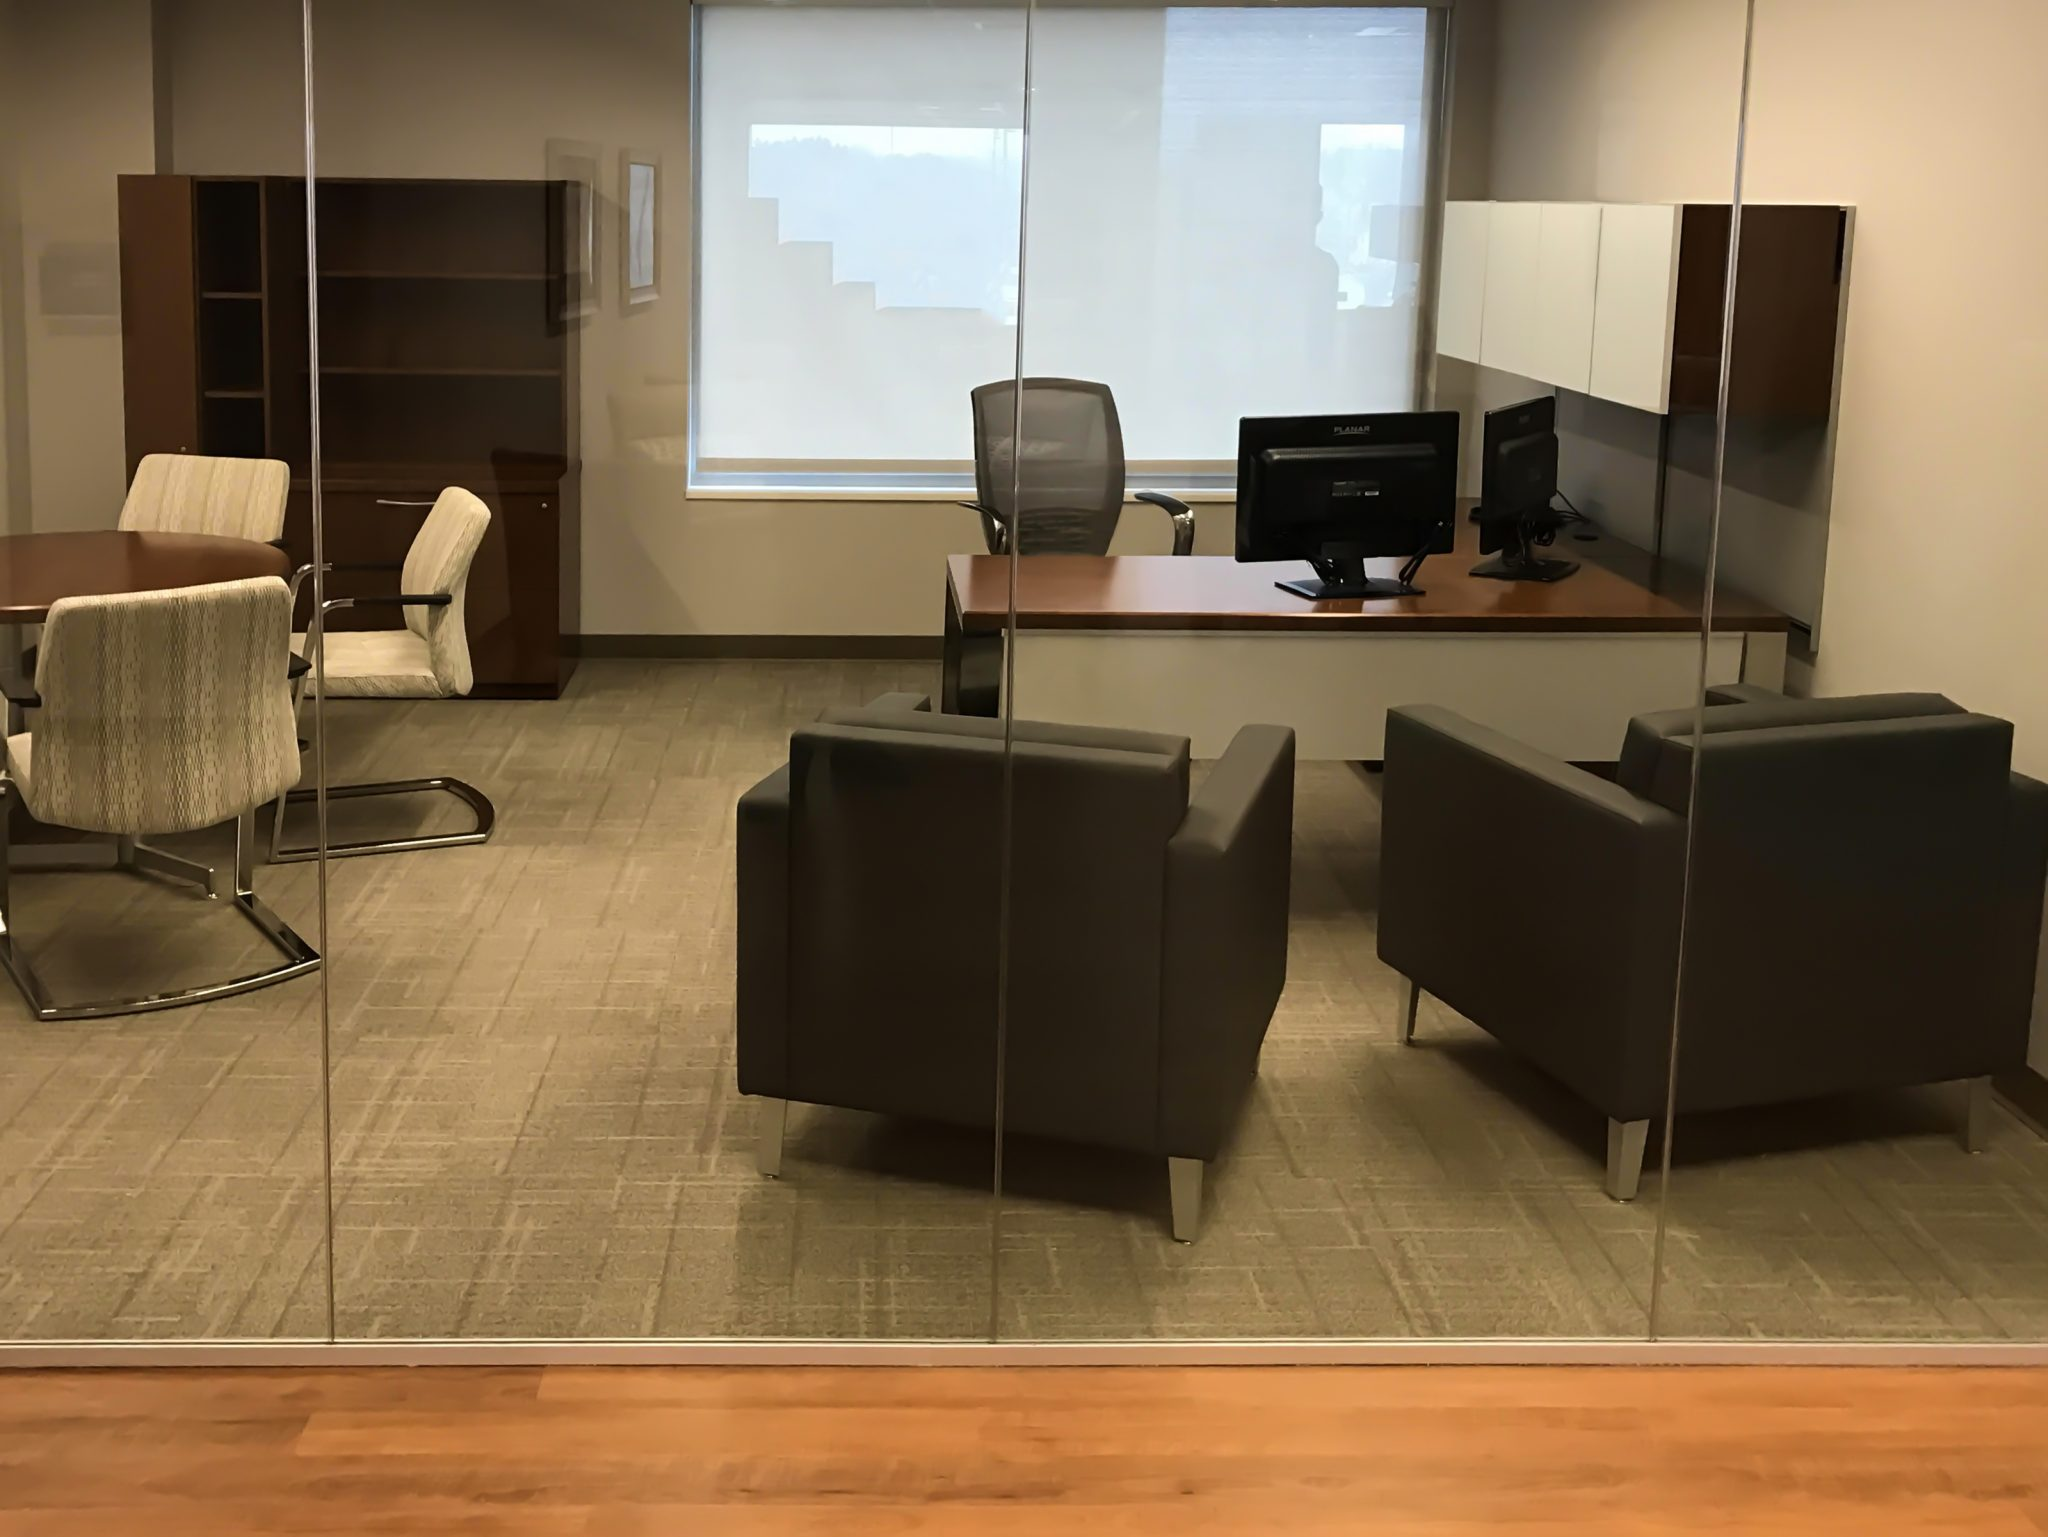 WVU Medicine adding agile workspaces